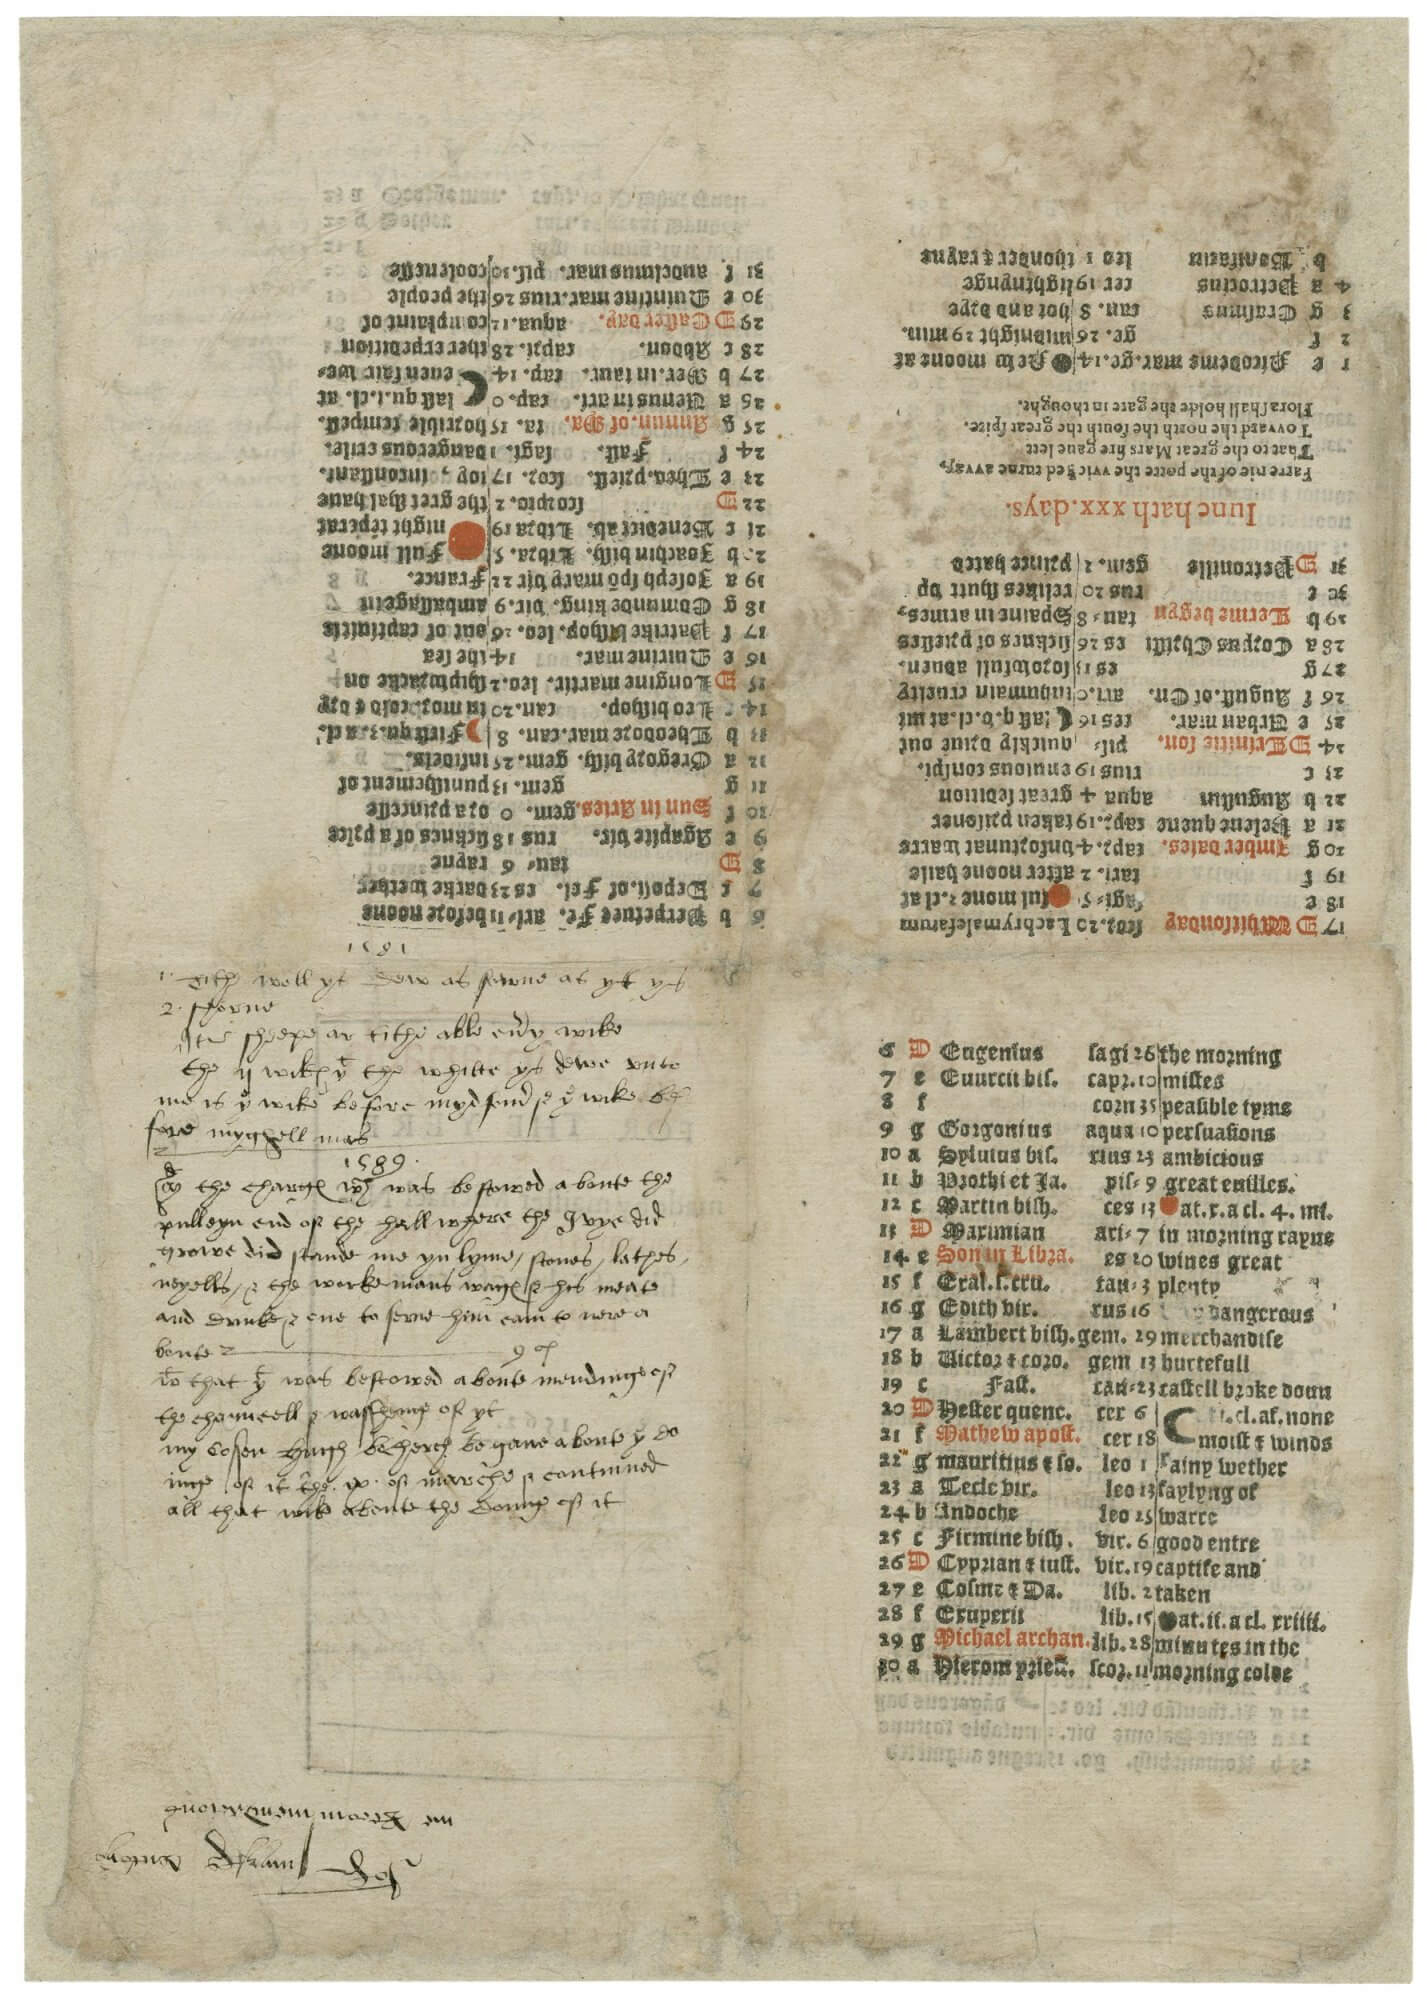 Although this almanac is for the year 1562, a user has added notes for a number of later years, including 1581 and 1589, as see here on the blank verso of the title page.